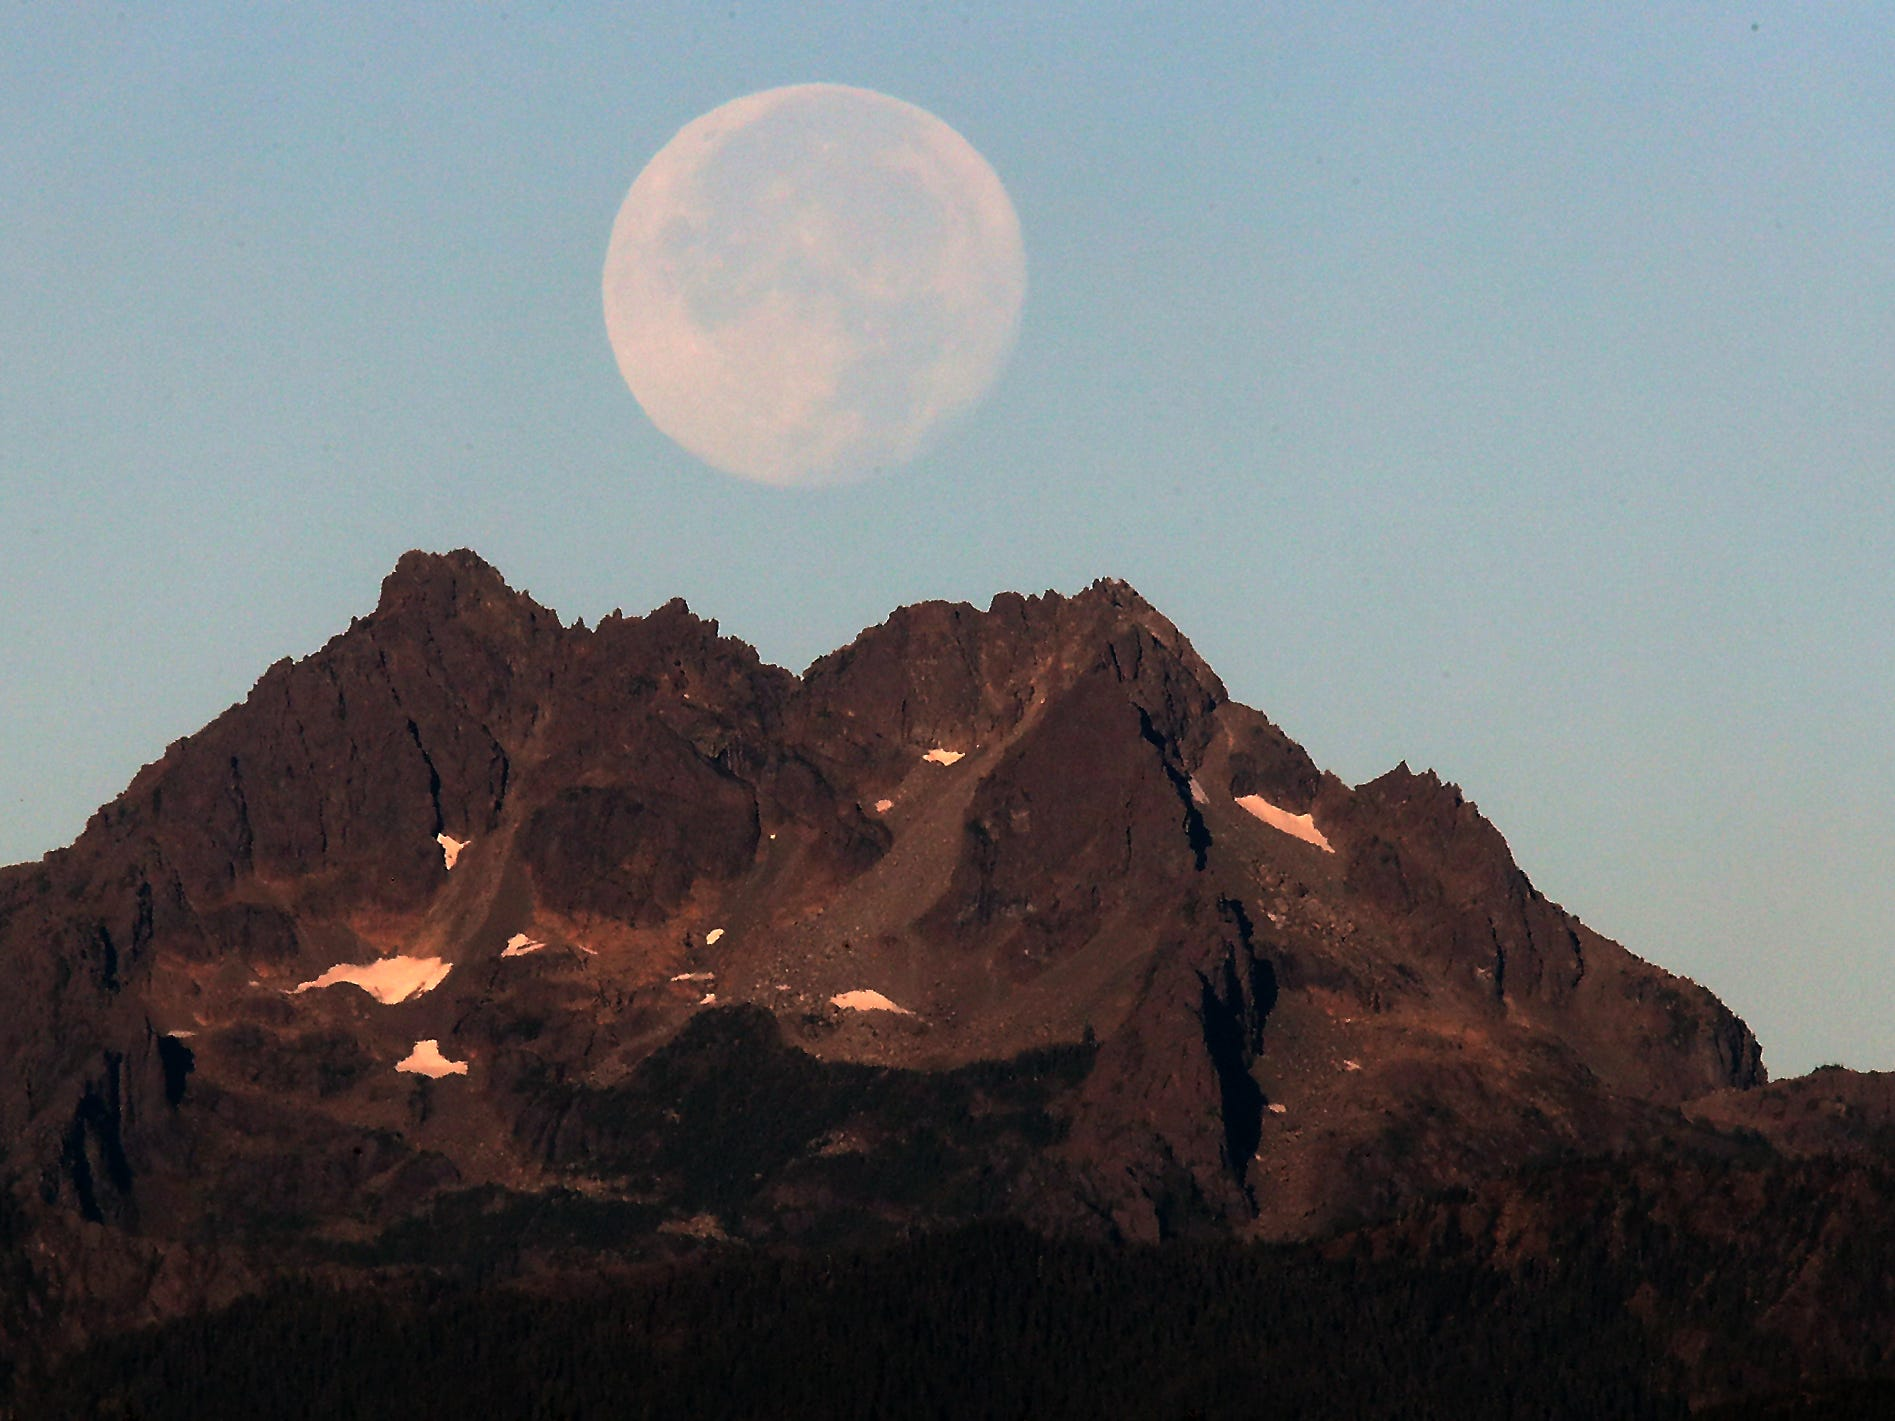 The moon sets above the Brothers of the Olympic Mountain Range as viewed from Silverdale, Washington on Wednesday, September 26, 2018.